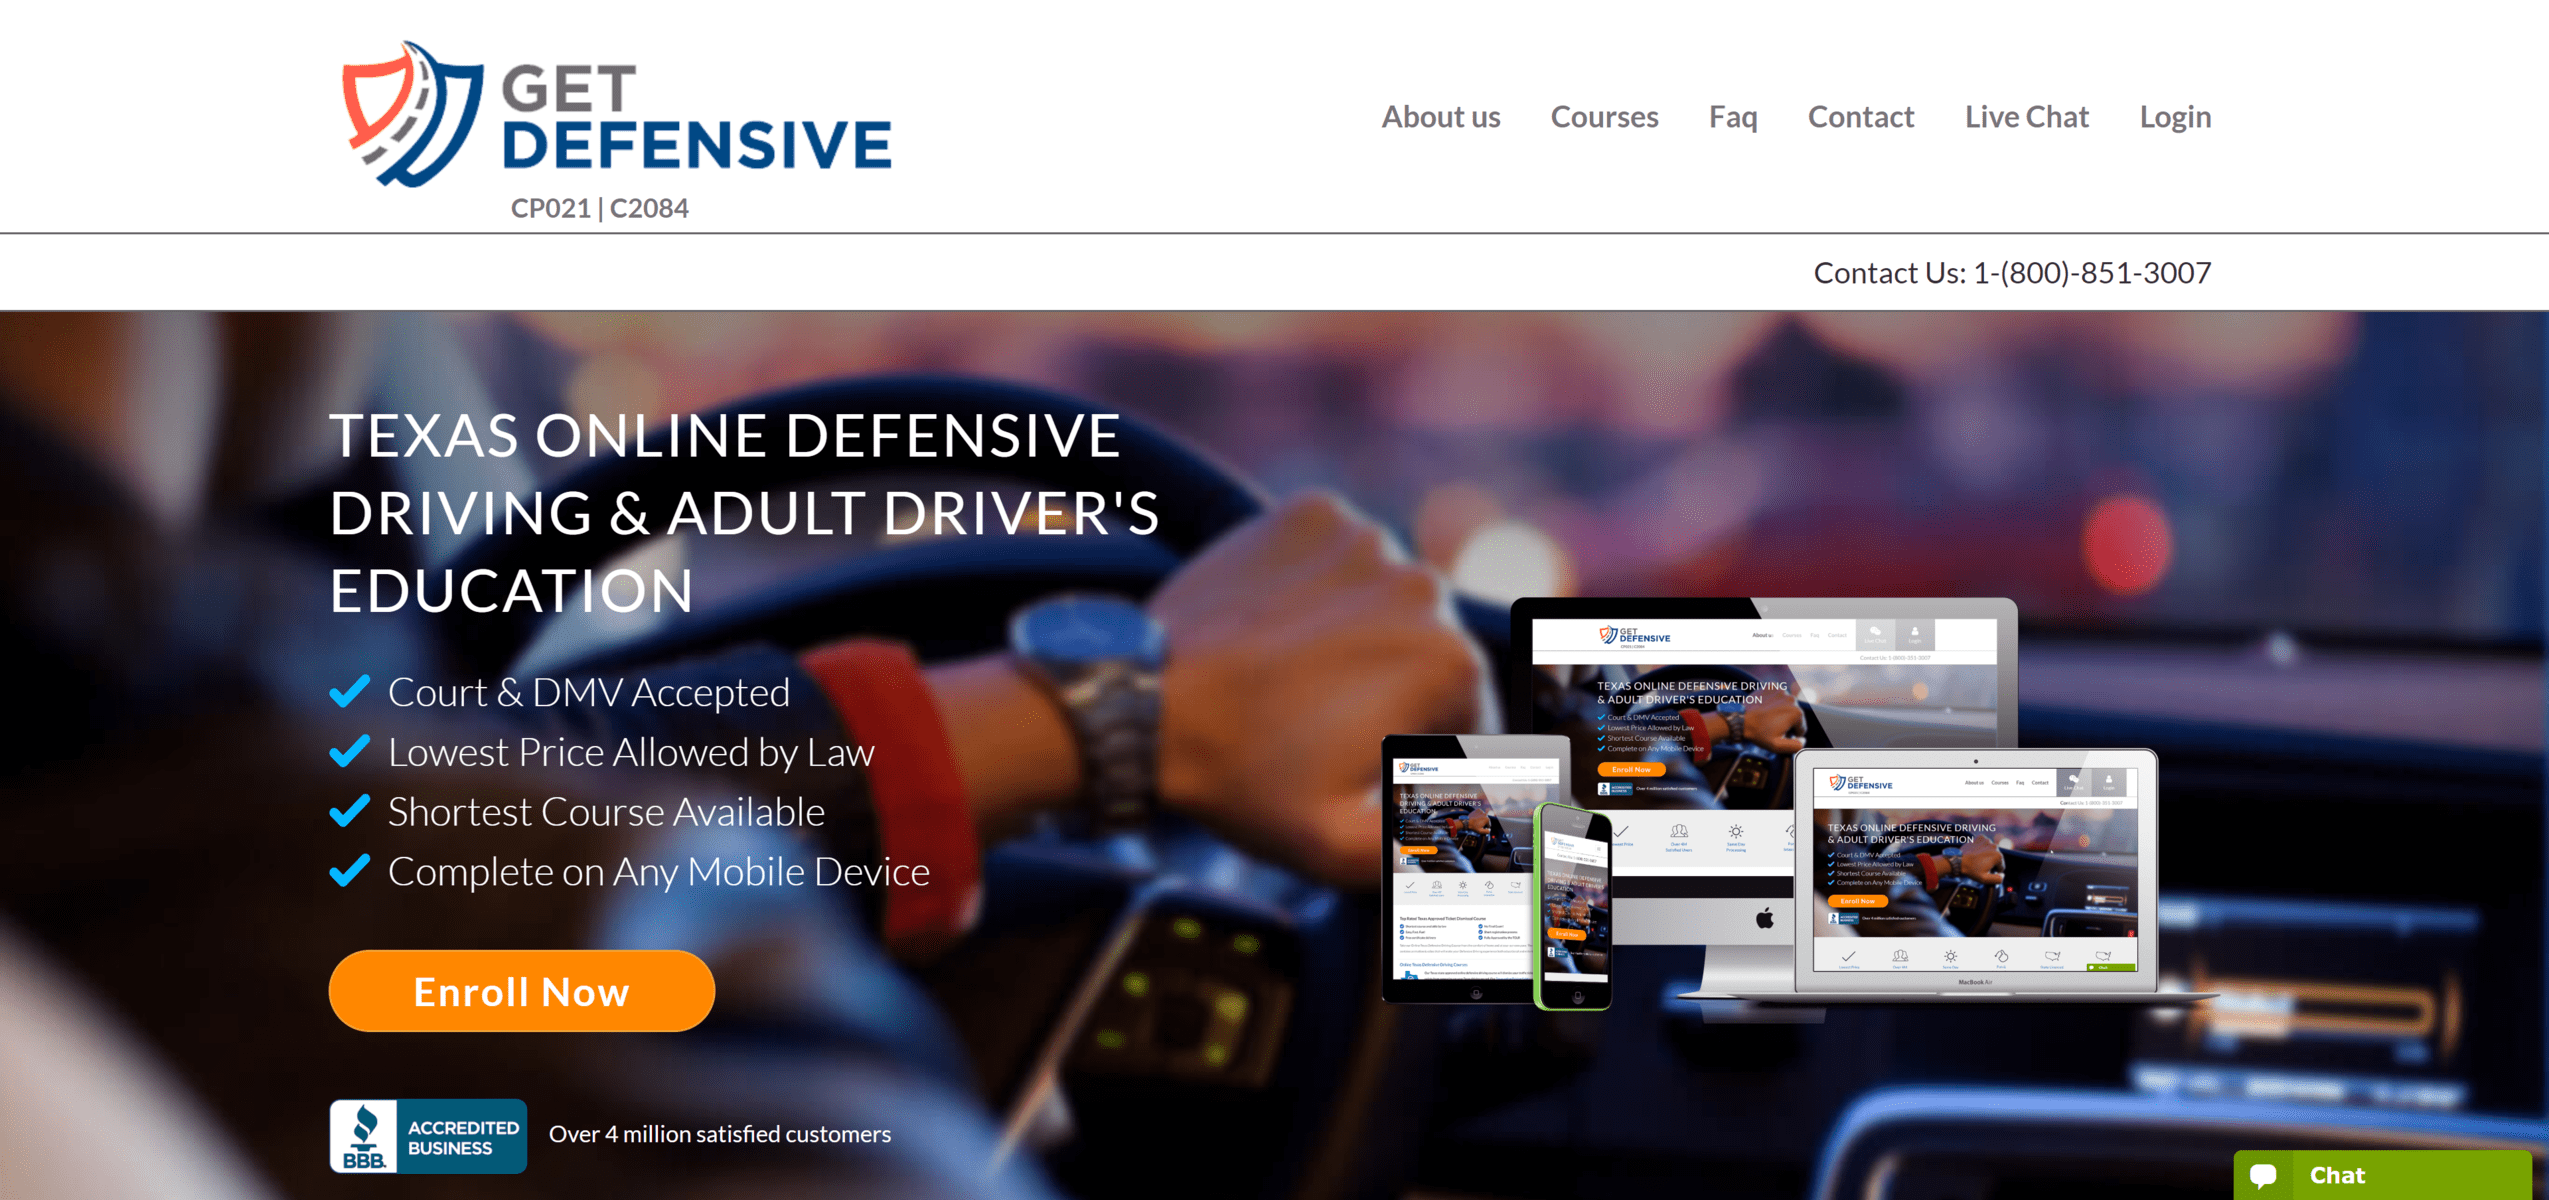 GetDefensive.com Review